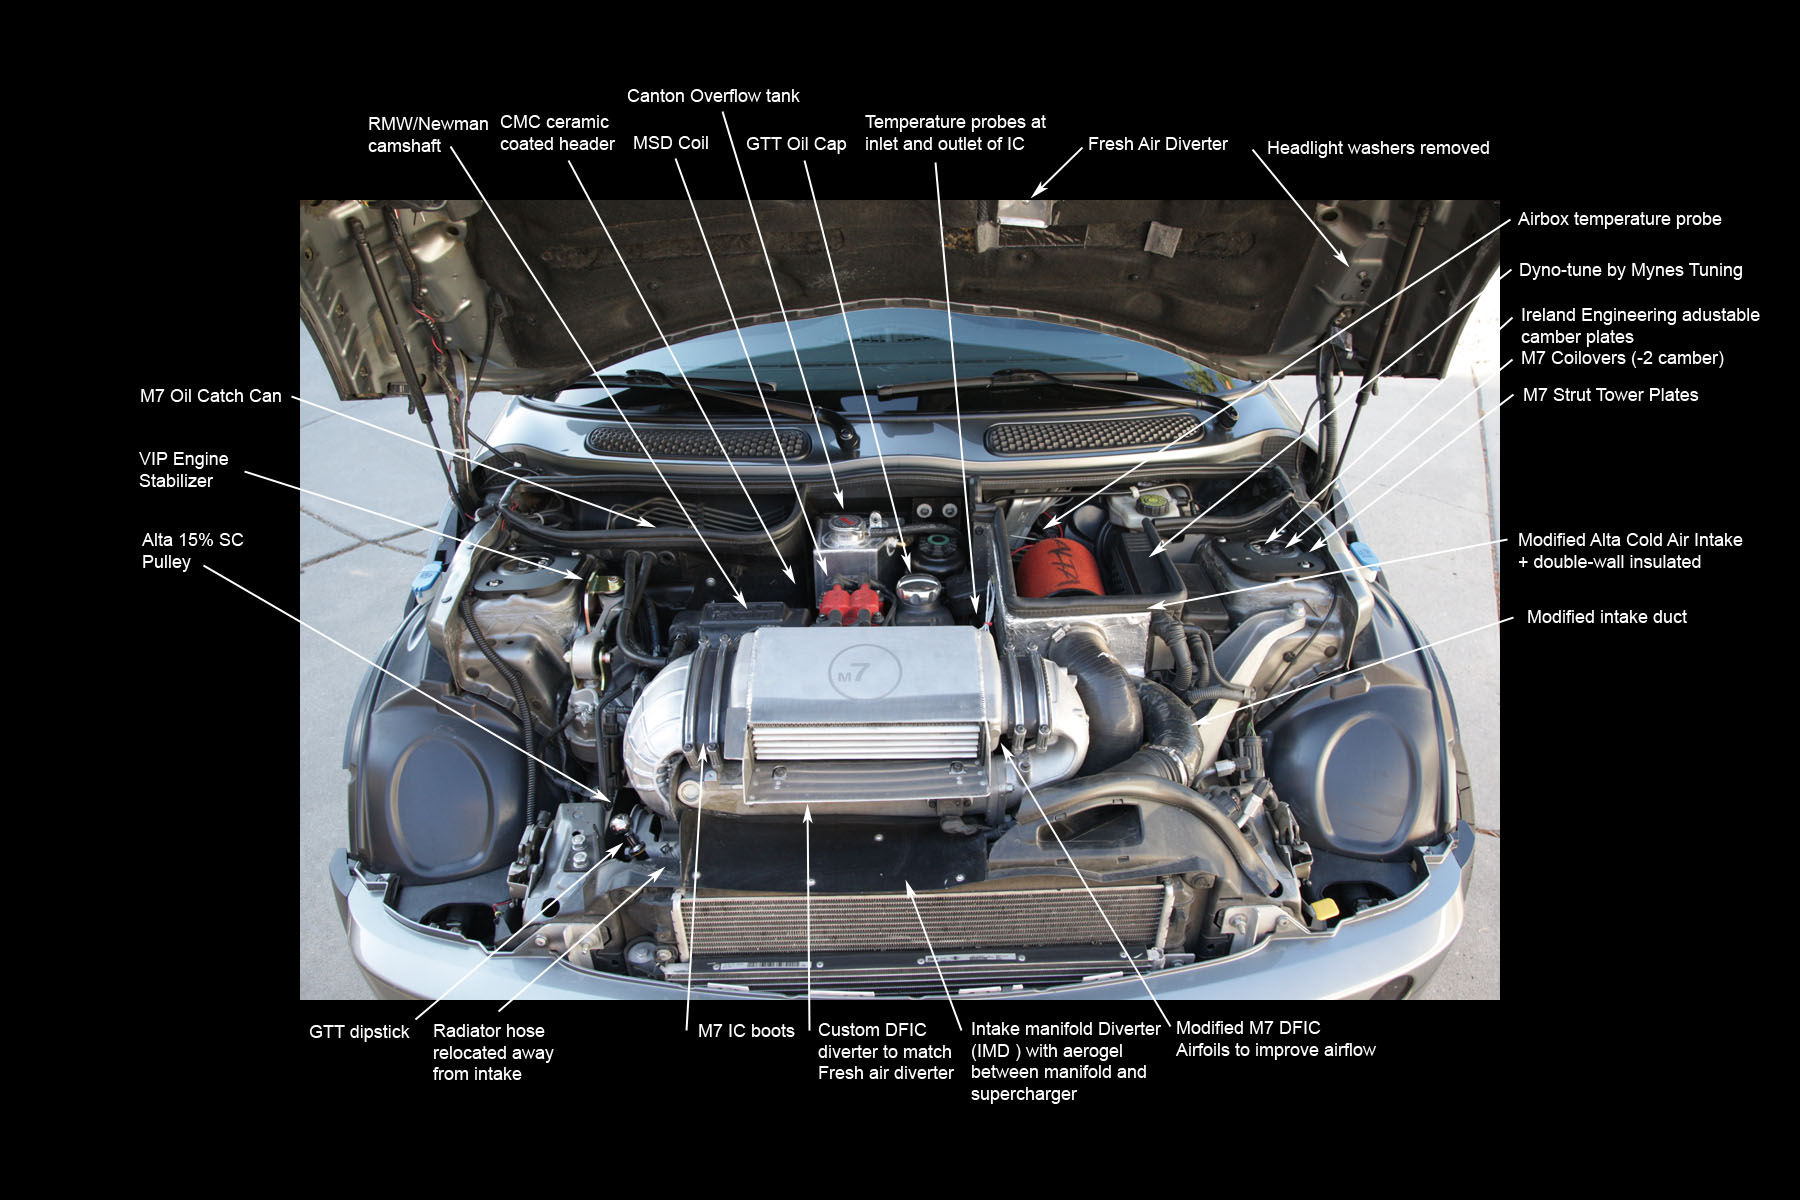 2007 Mini Cooper Engine Parts Diagram Simple Guide About Wiring Sophisticated Nissan Pathfinder Compartment